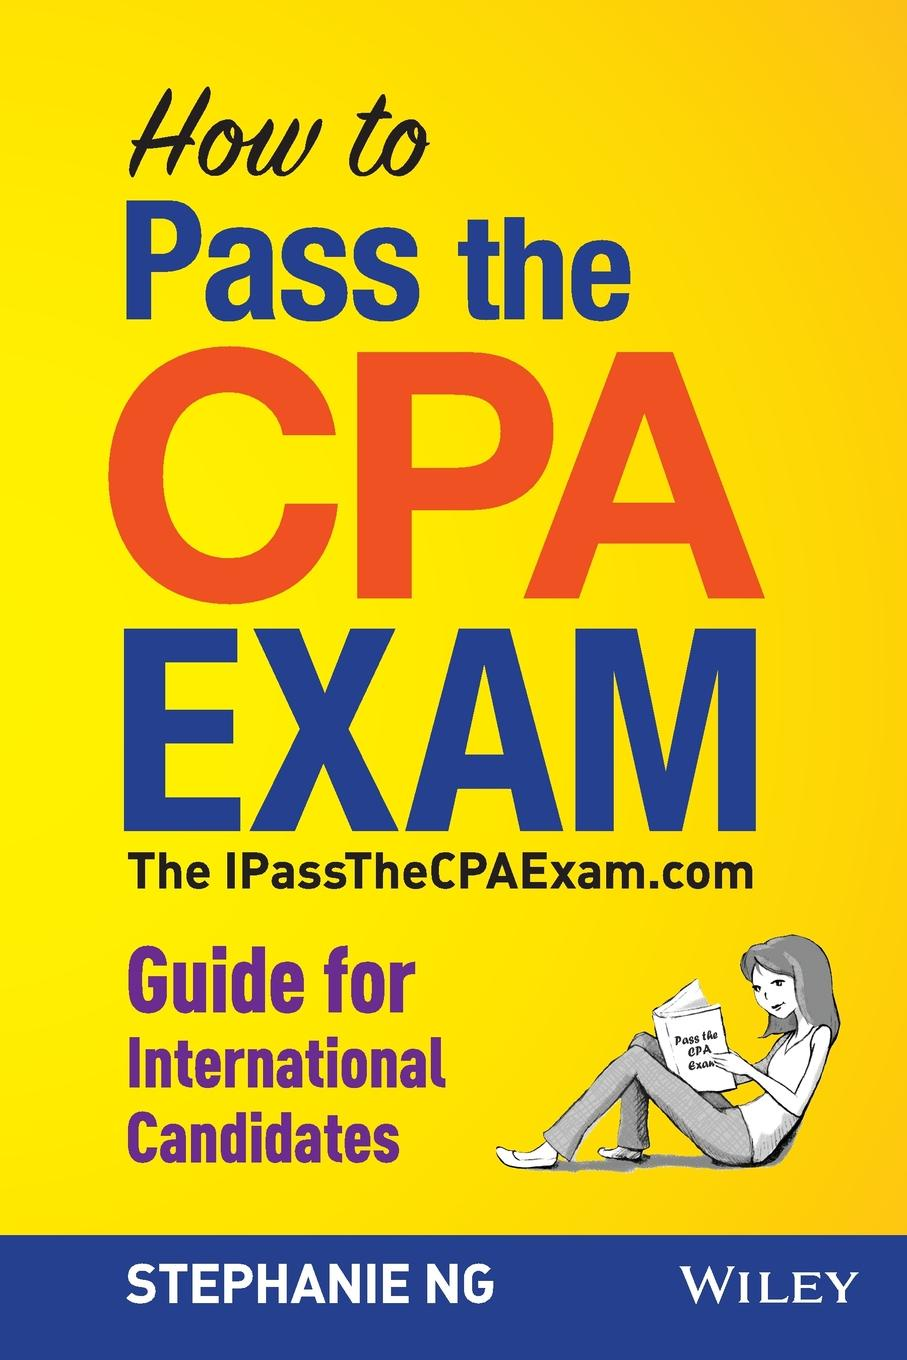 Stephanie Ng How to Pass the CPA Exam. An International Guide roger philipp wiley cpa exam review 2011 update isbn 9781118016374